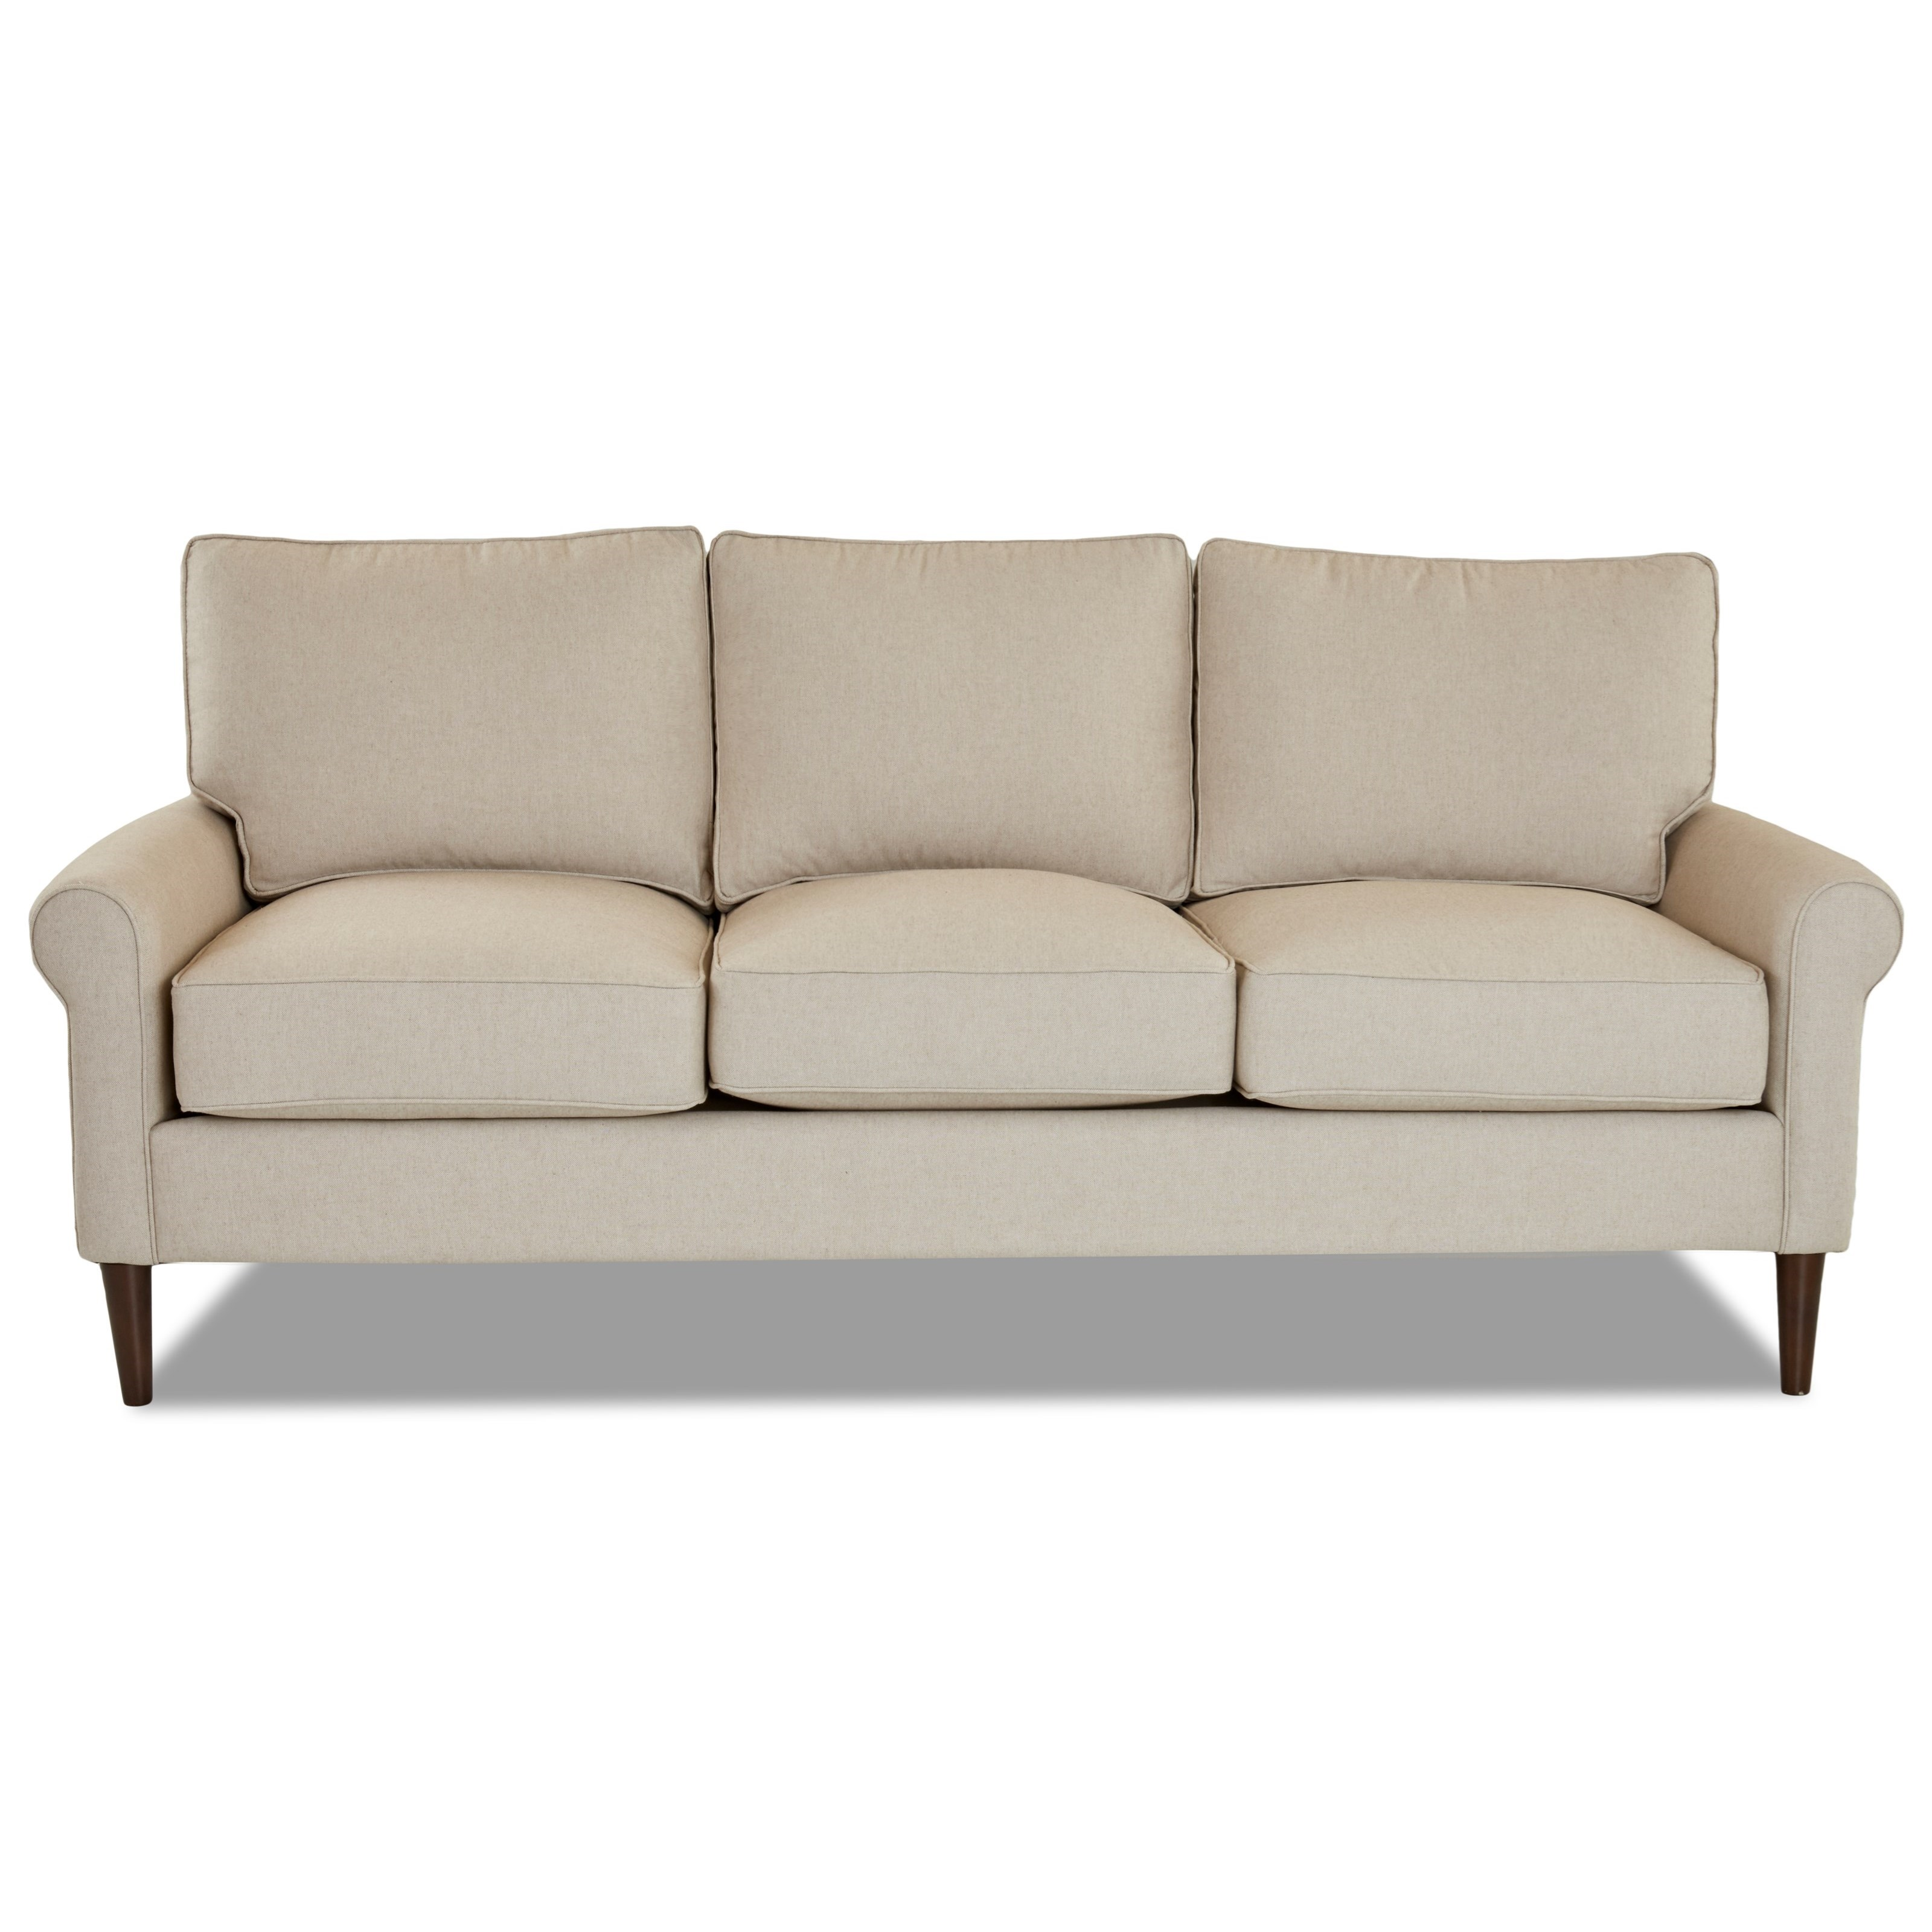 Chelsea Sofa with Round Tapered Legs by Klaussner at Johnny Janosik